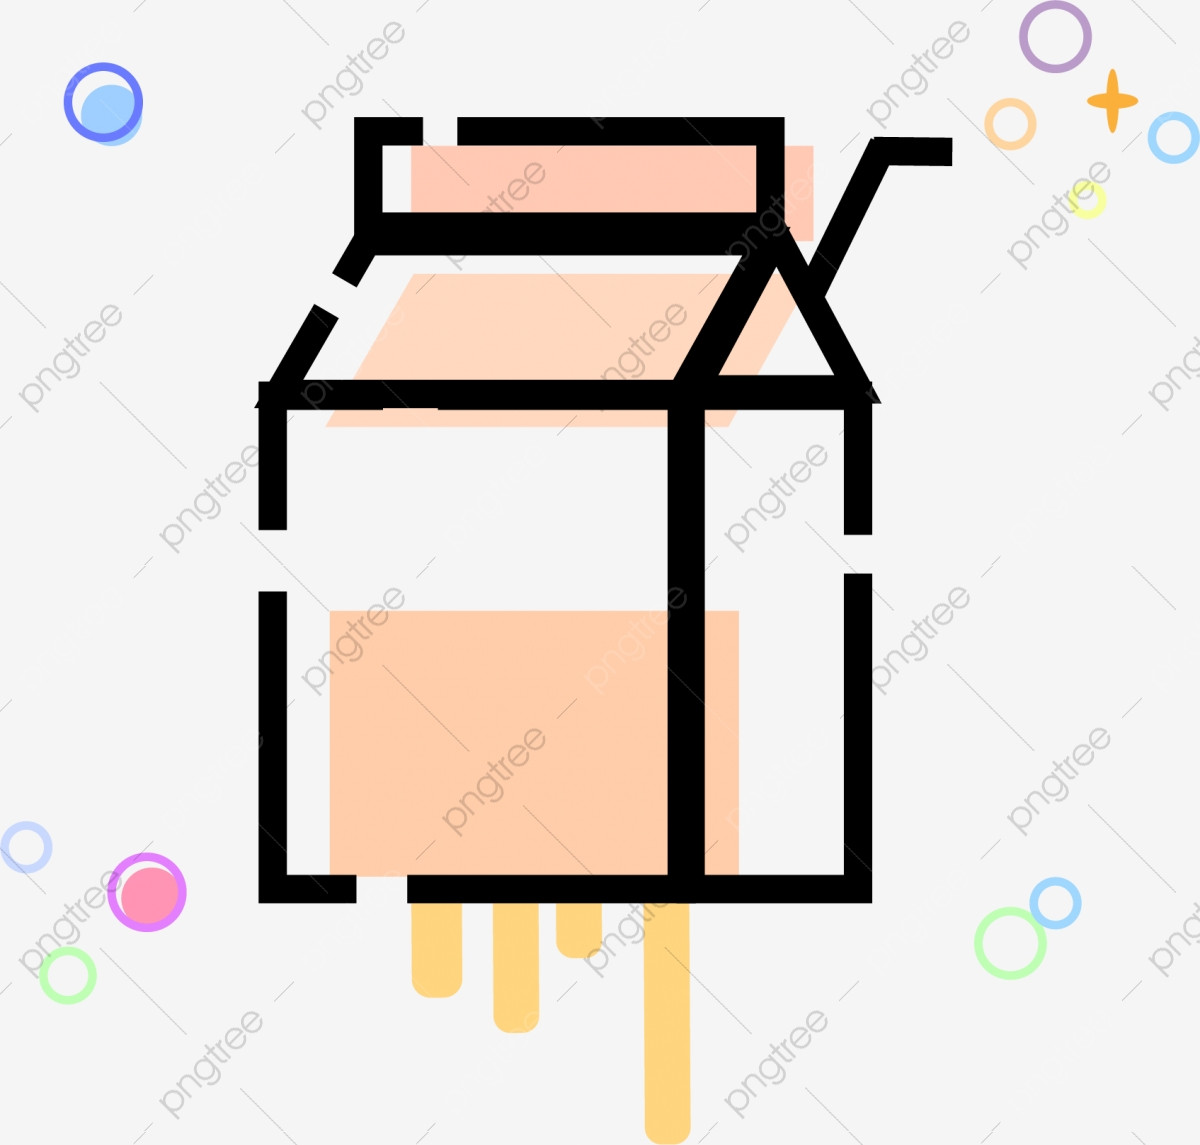 catering icon png images vector and psd files free download on pngtree https pngtree com freepng mbe milk box icon drink icon catering icon 3884319 html